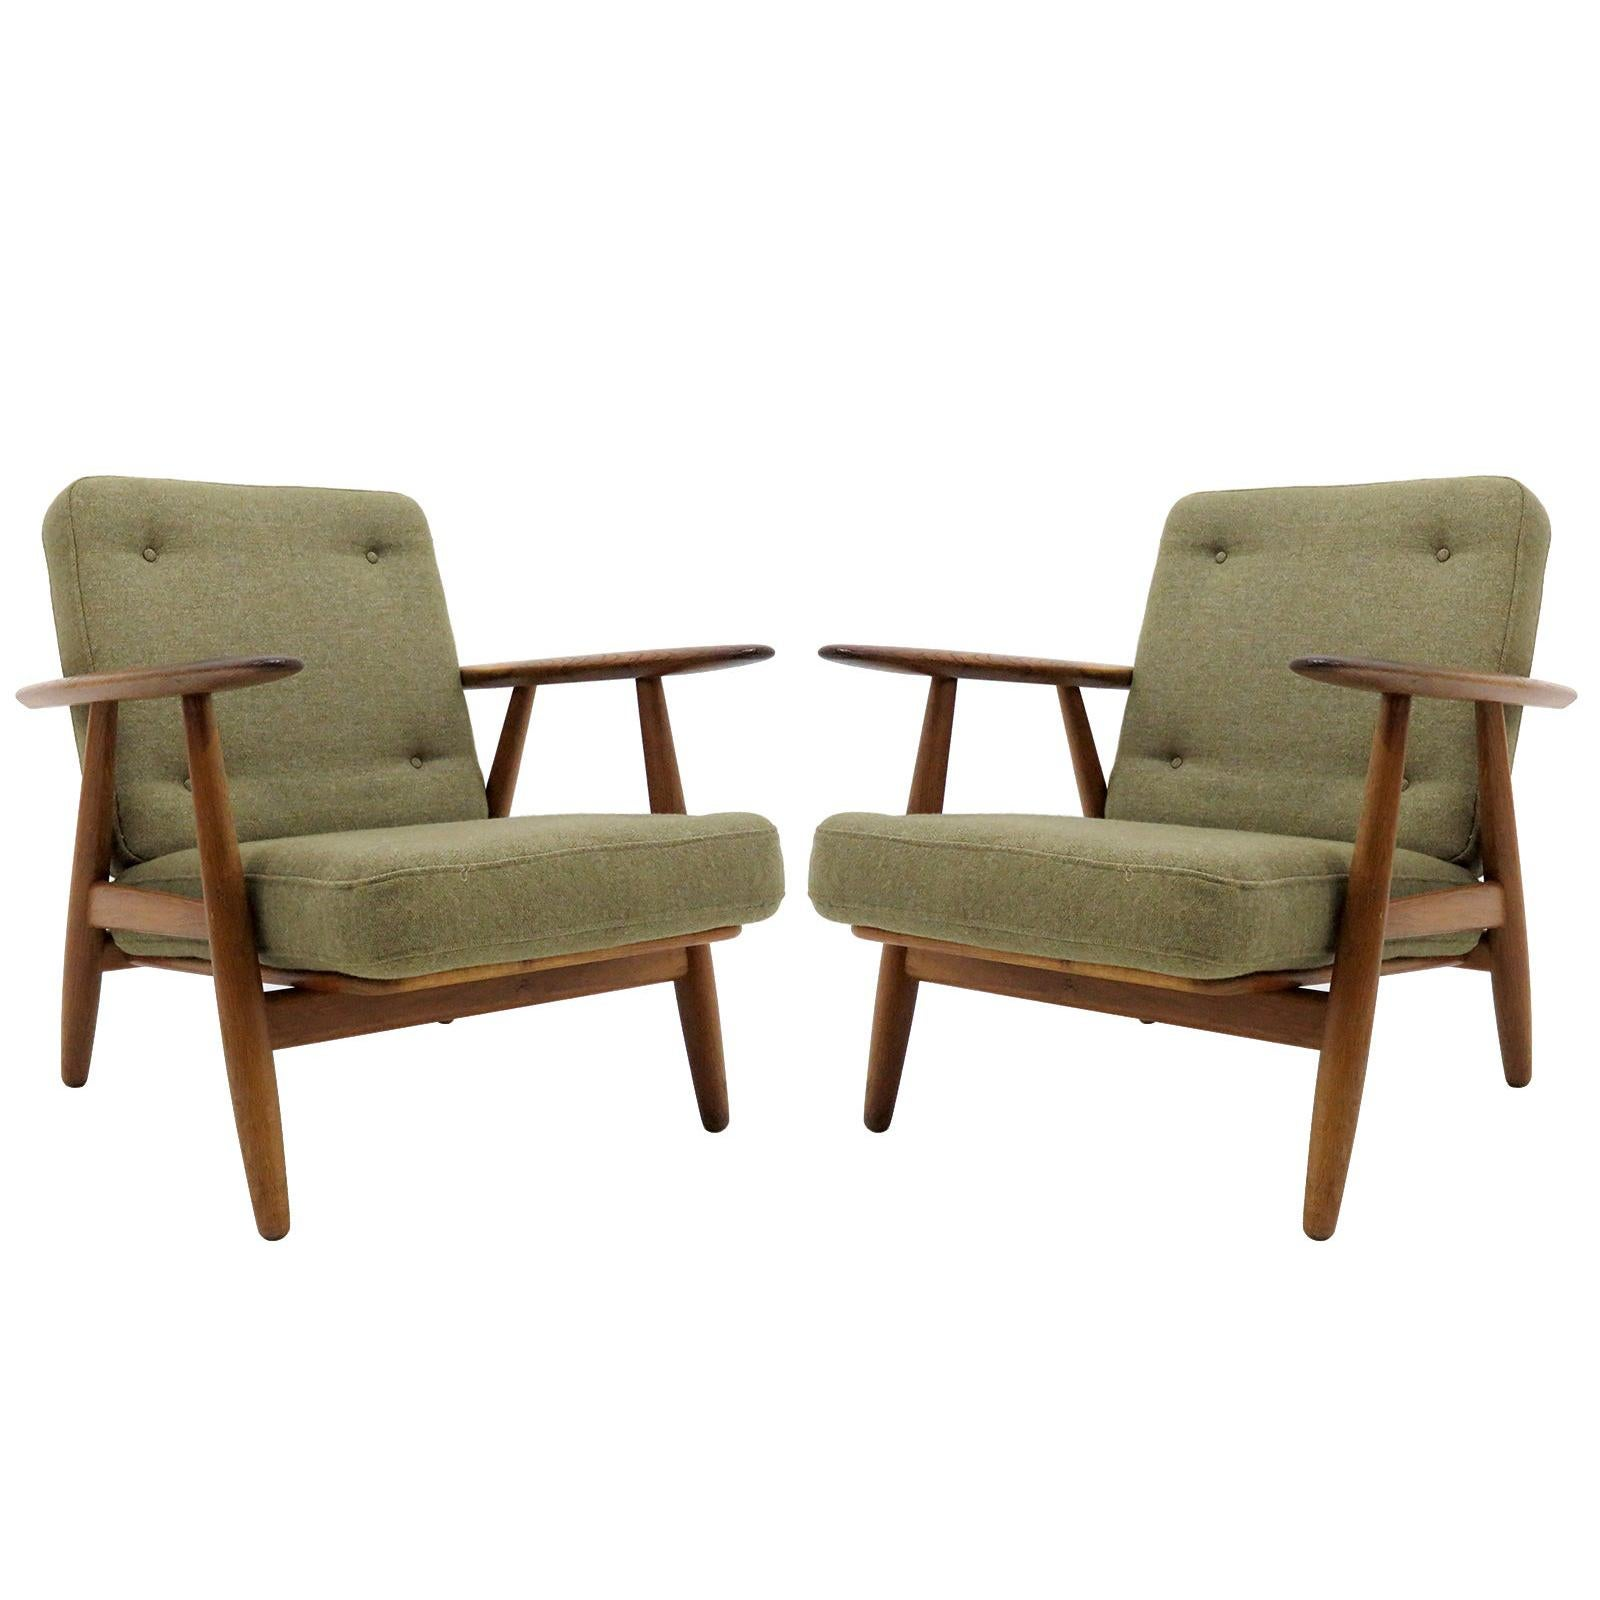 Hans Wegner Lounge Chairs, Model GE-240